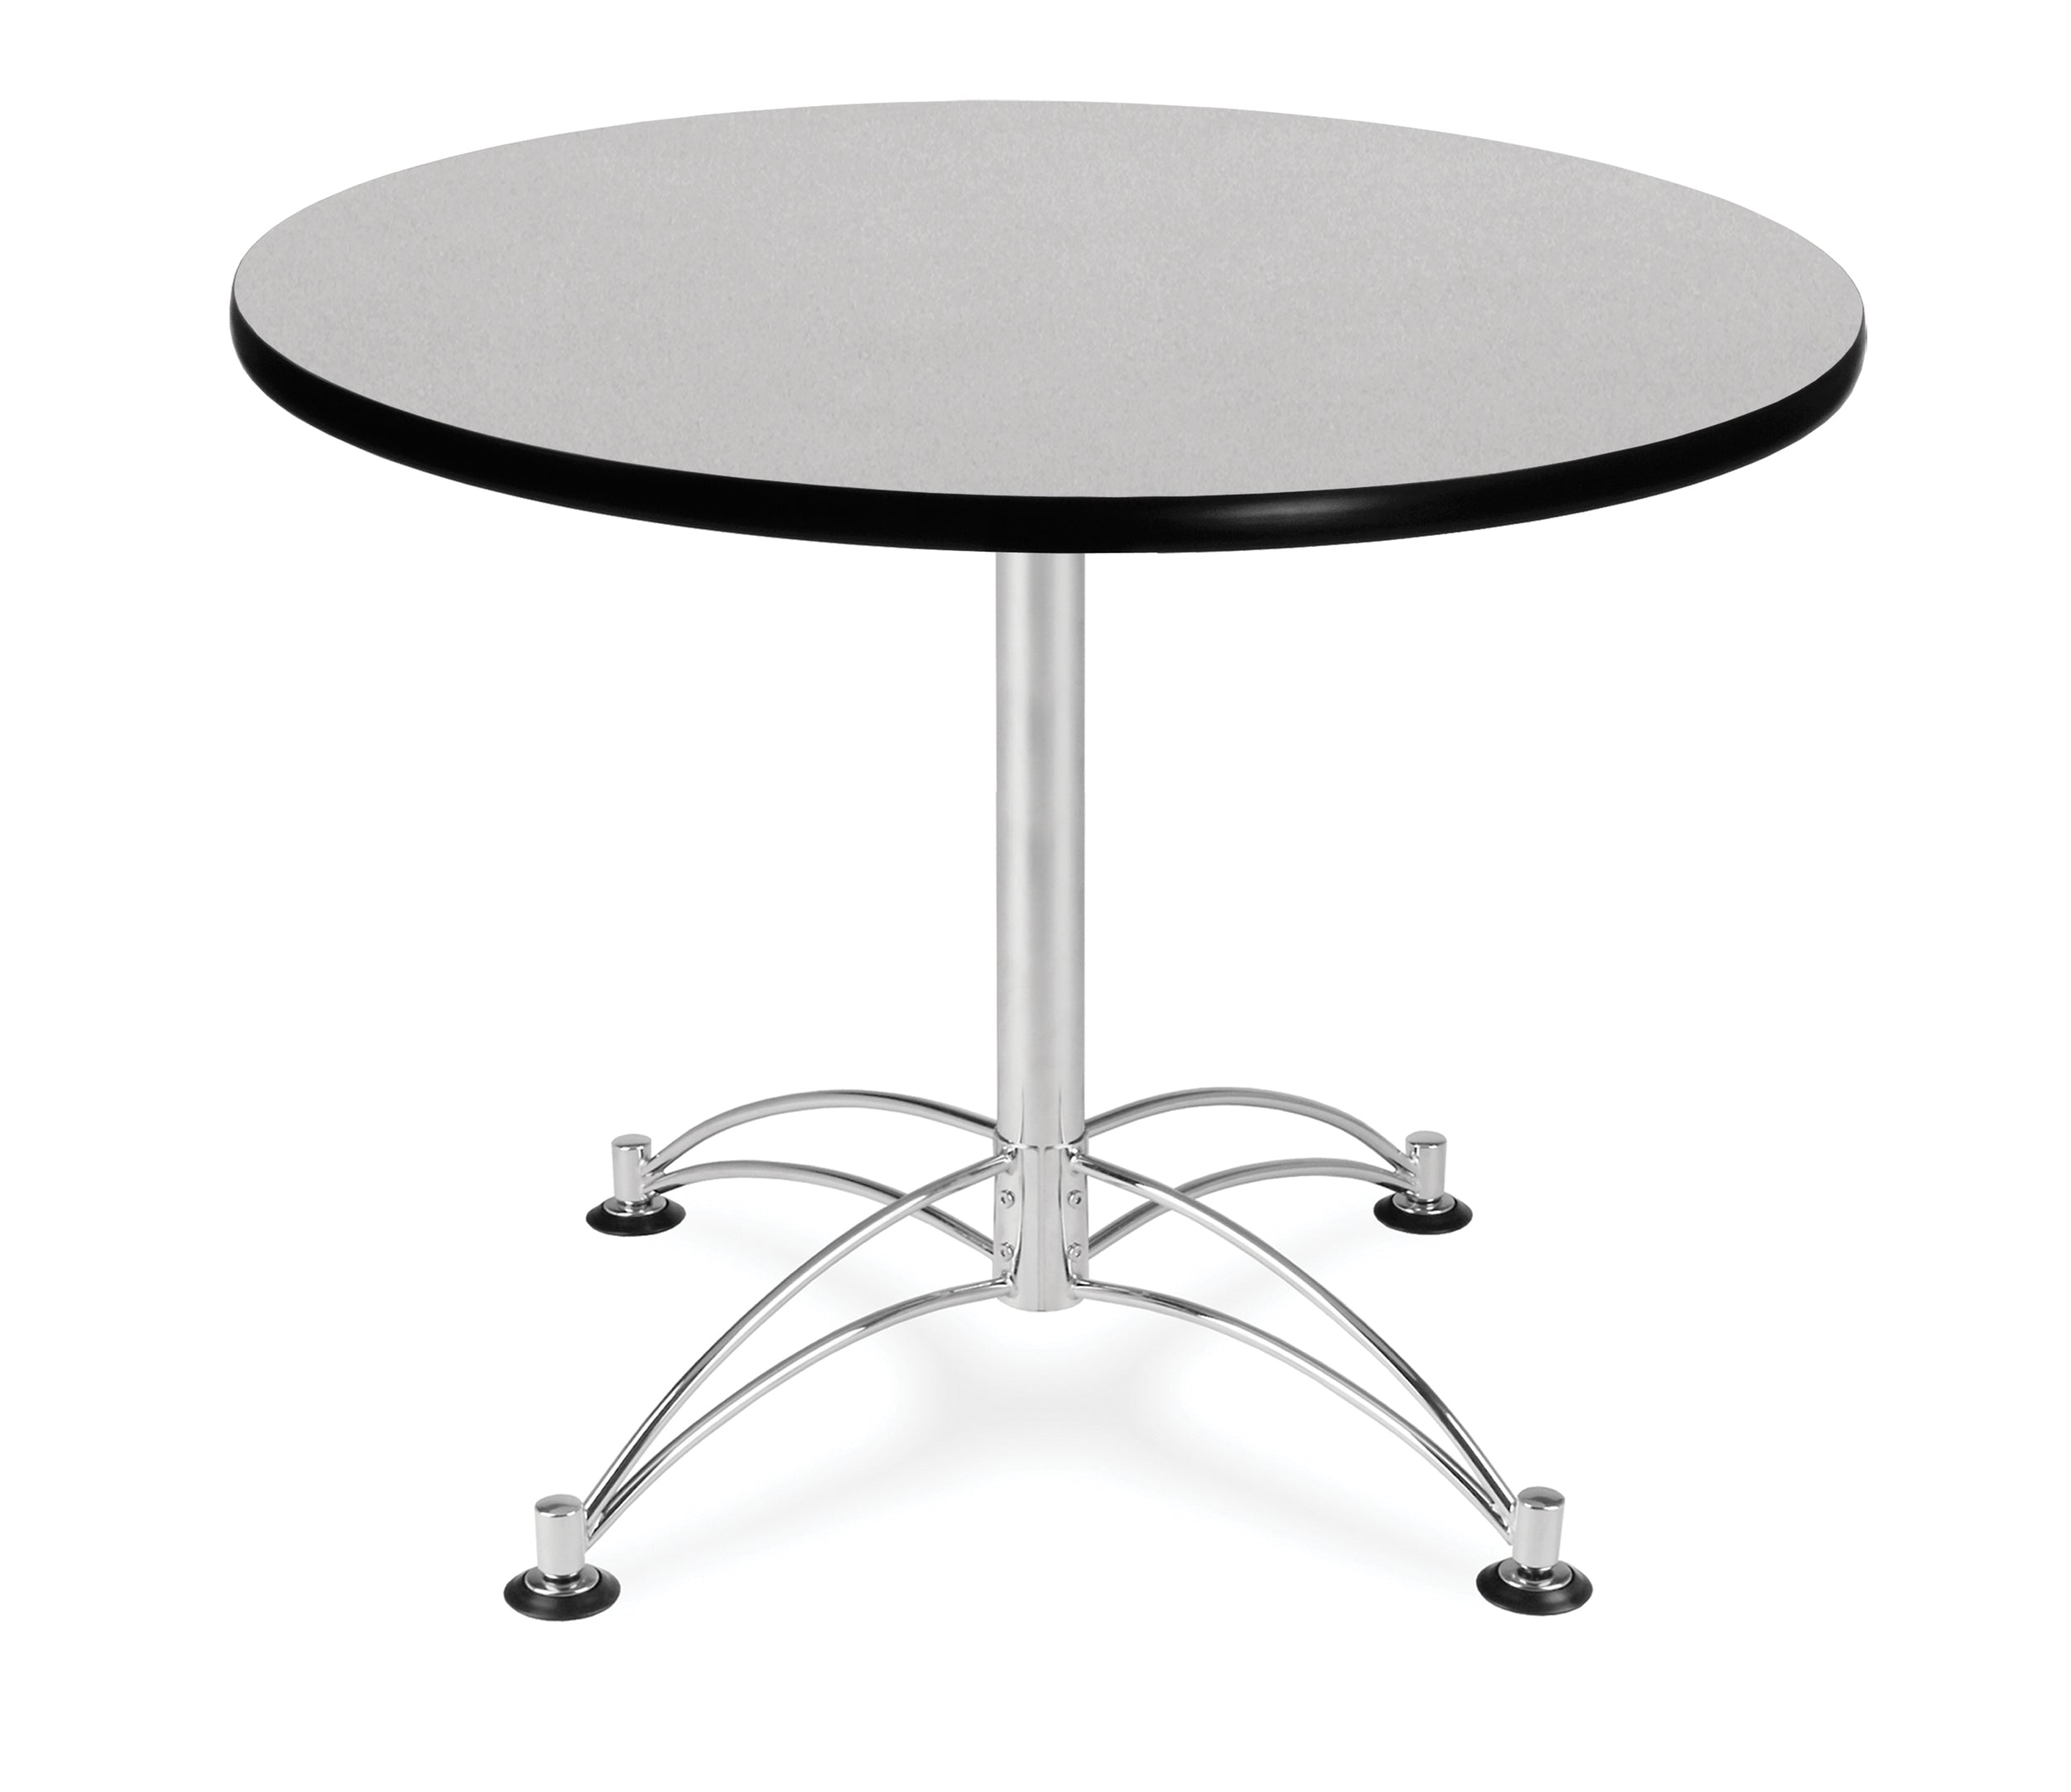 Ofminc Model LT36RD 36 Inch Round Multi-Purpose Table